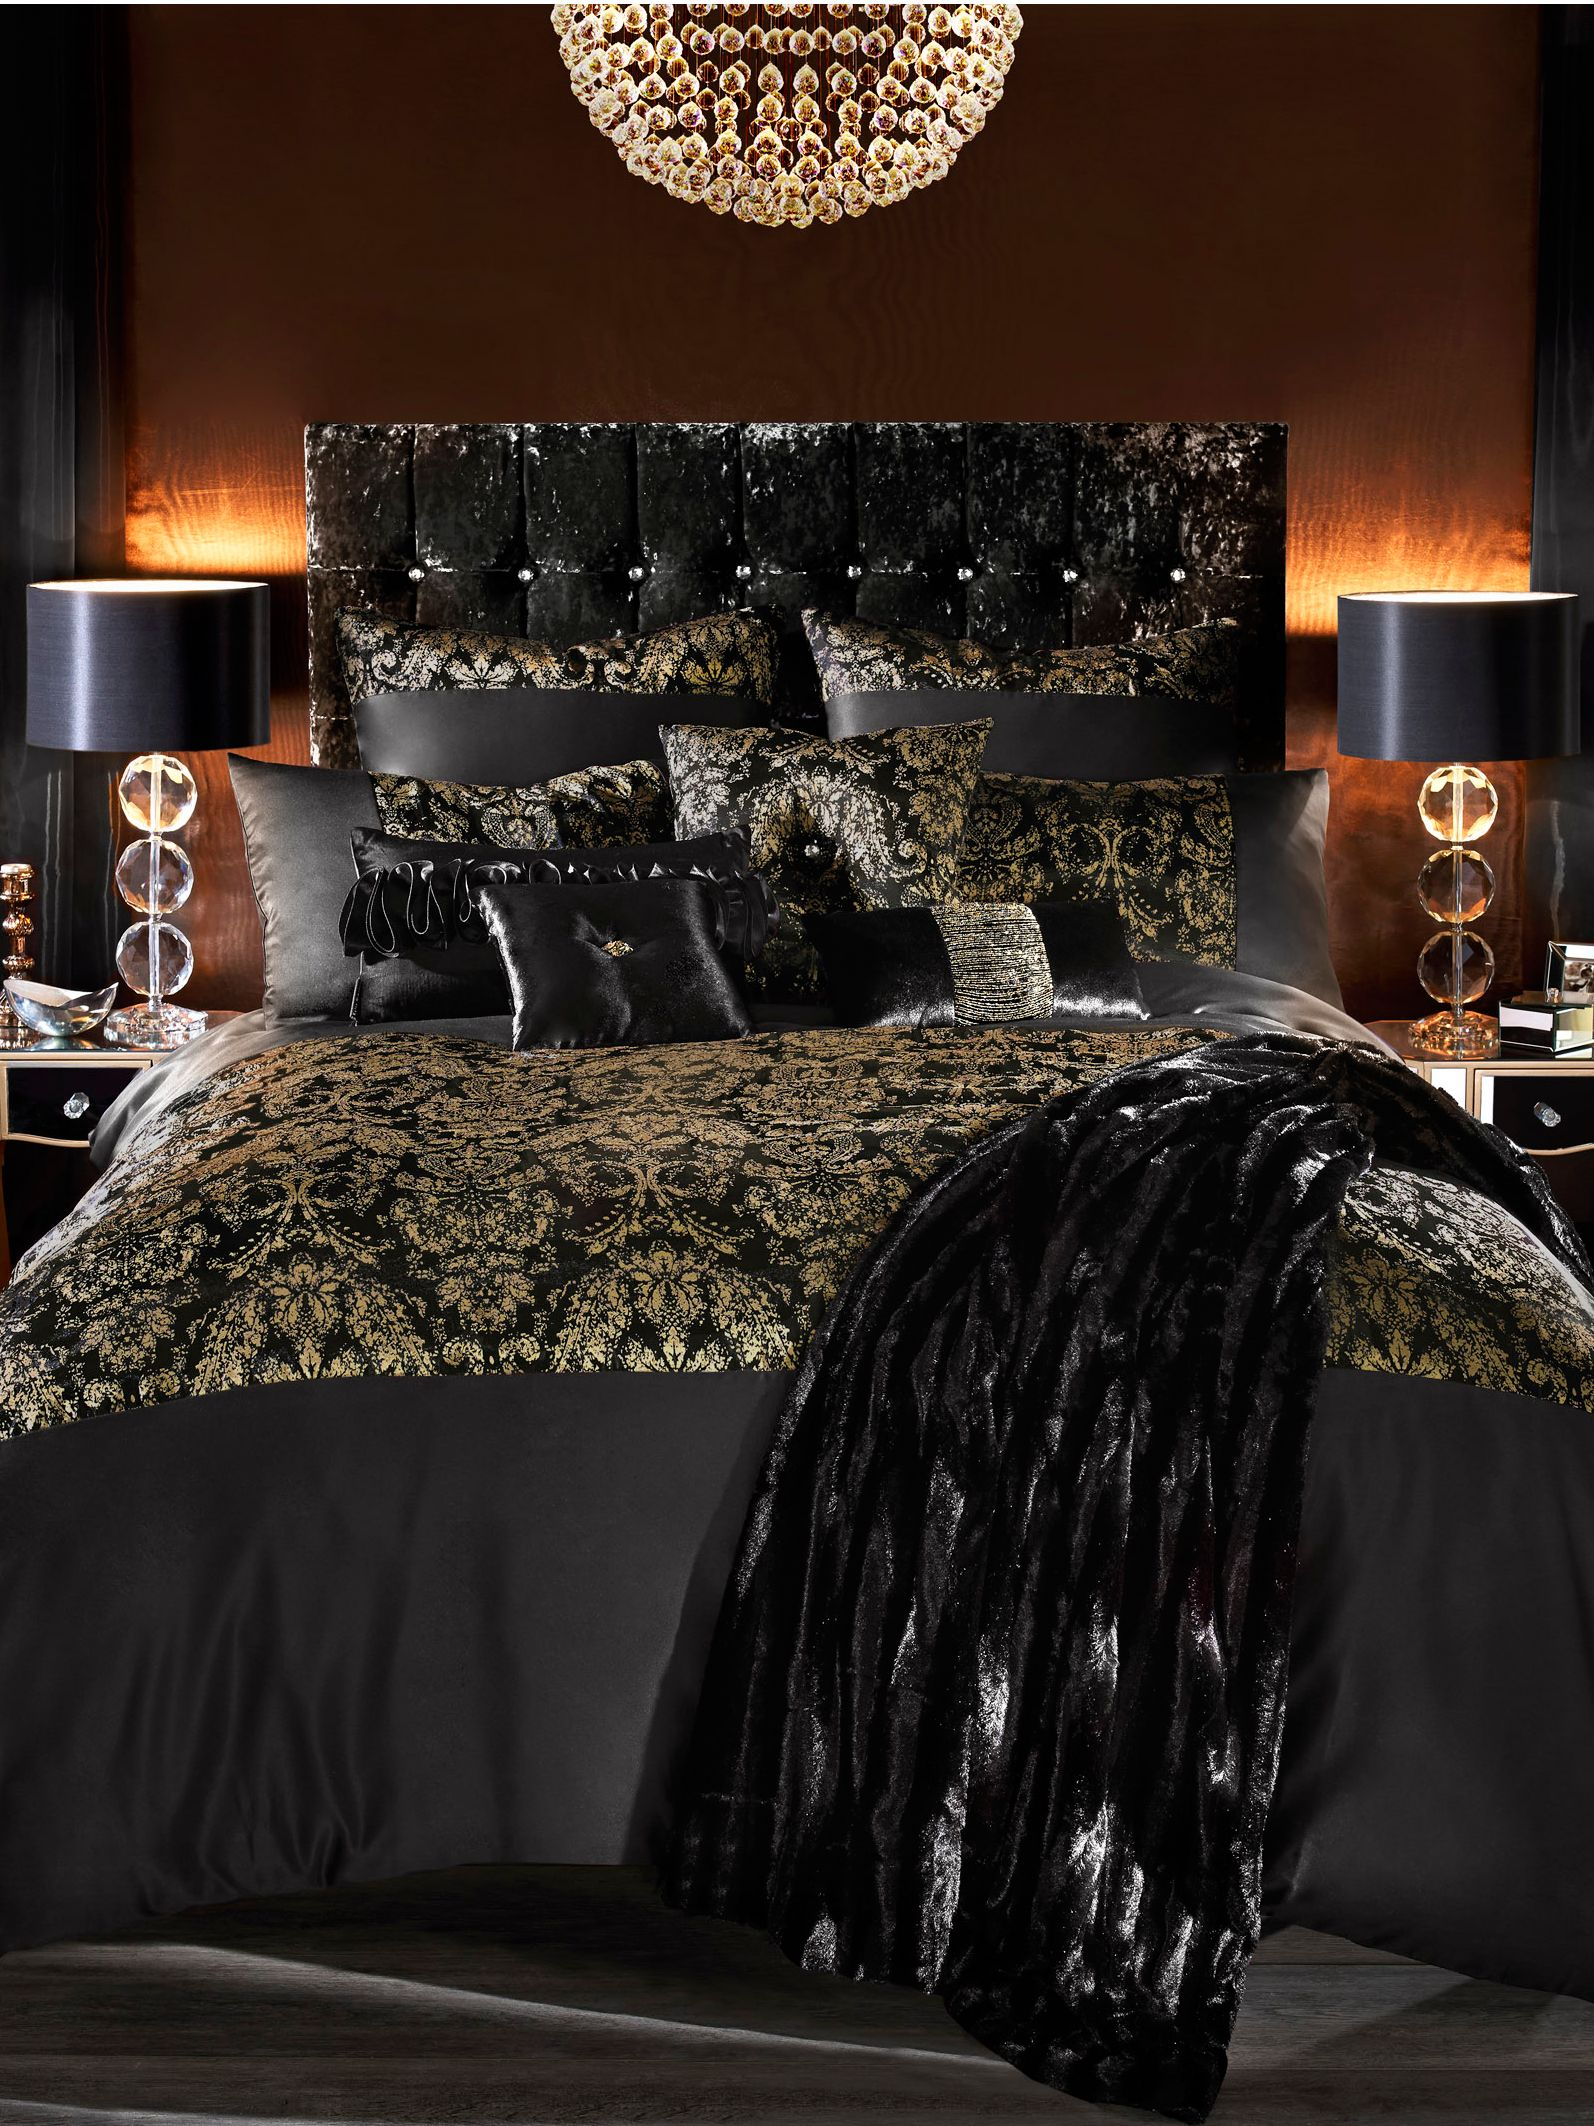 Alondra double duvet cover in black and gold